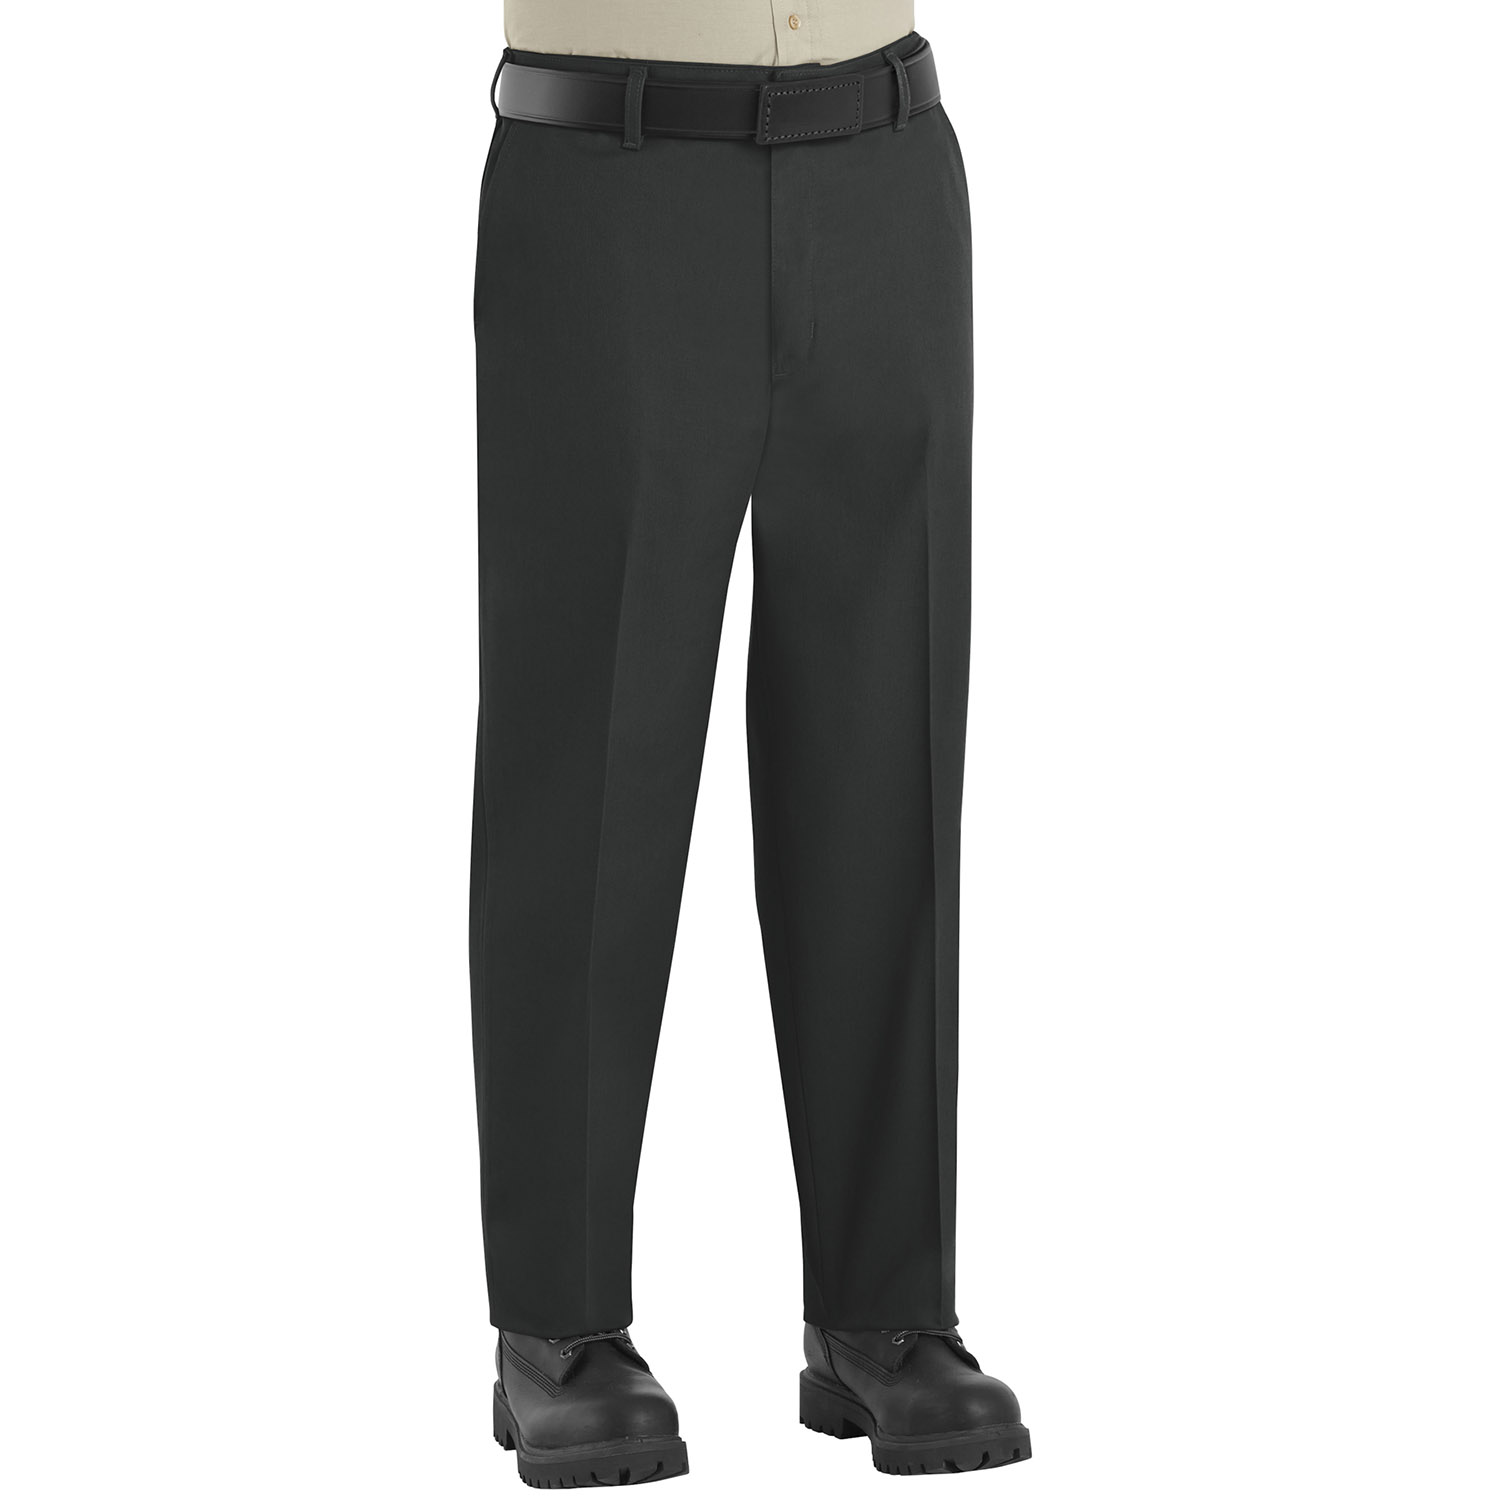 Red Kap Men's Side Elastic Waist Pants